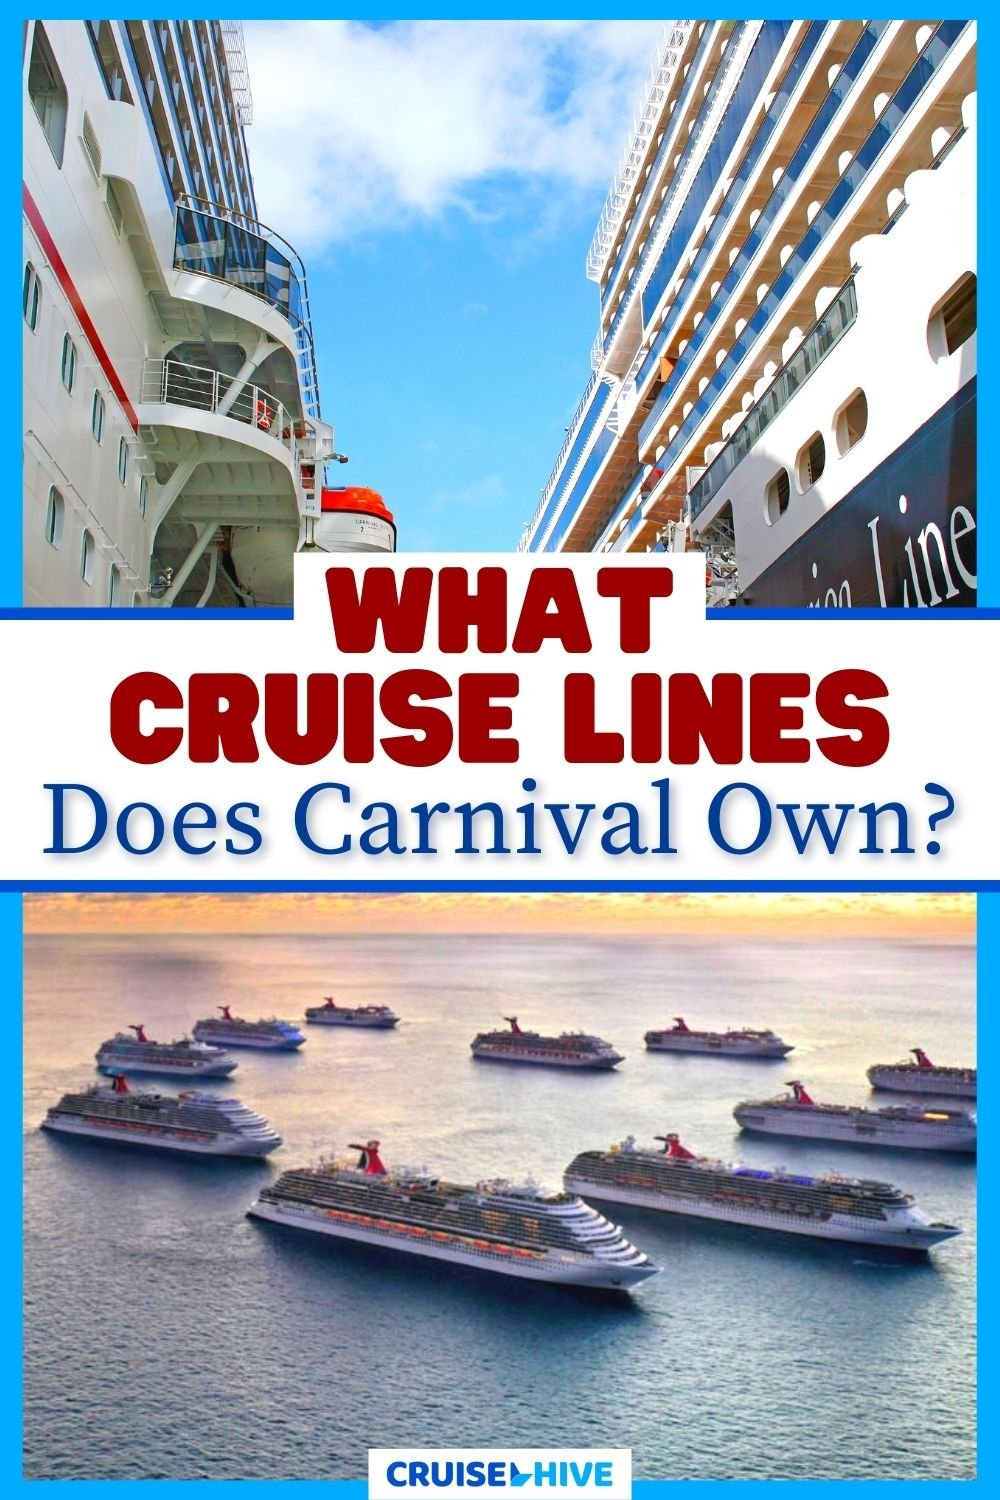 What Cruise Lines Does Carnival Own